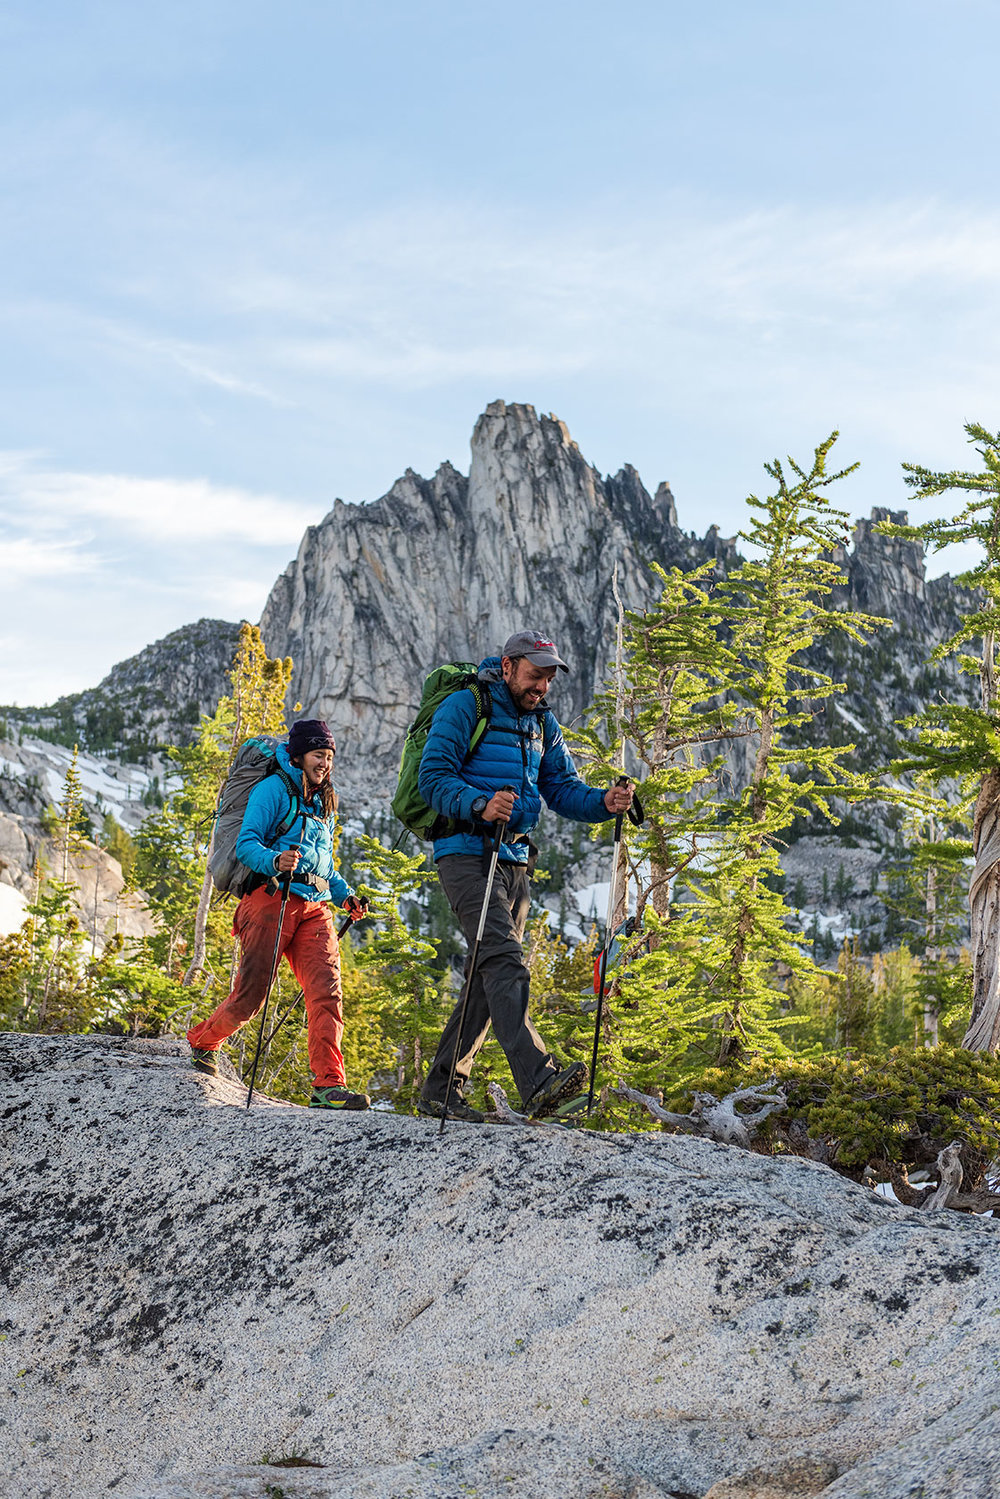 austin-trigg-osprey-hiking-backpacks-hike-camp-washington-adventure-morning-sunrise-lifestyle-outdoor-enchantments-prusik-alpine-lake-larch-tree.jpg